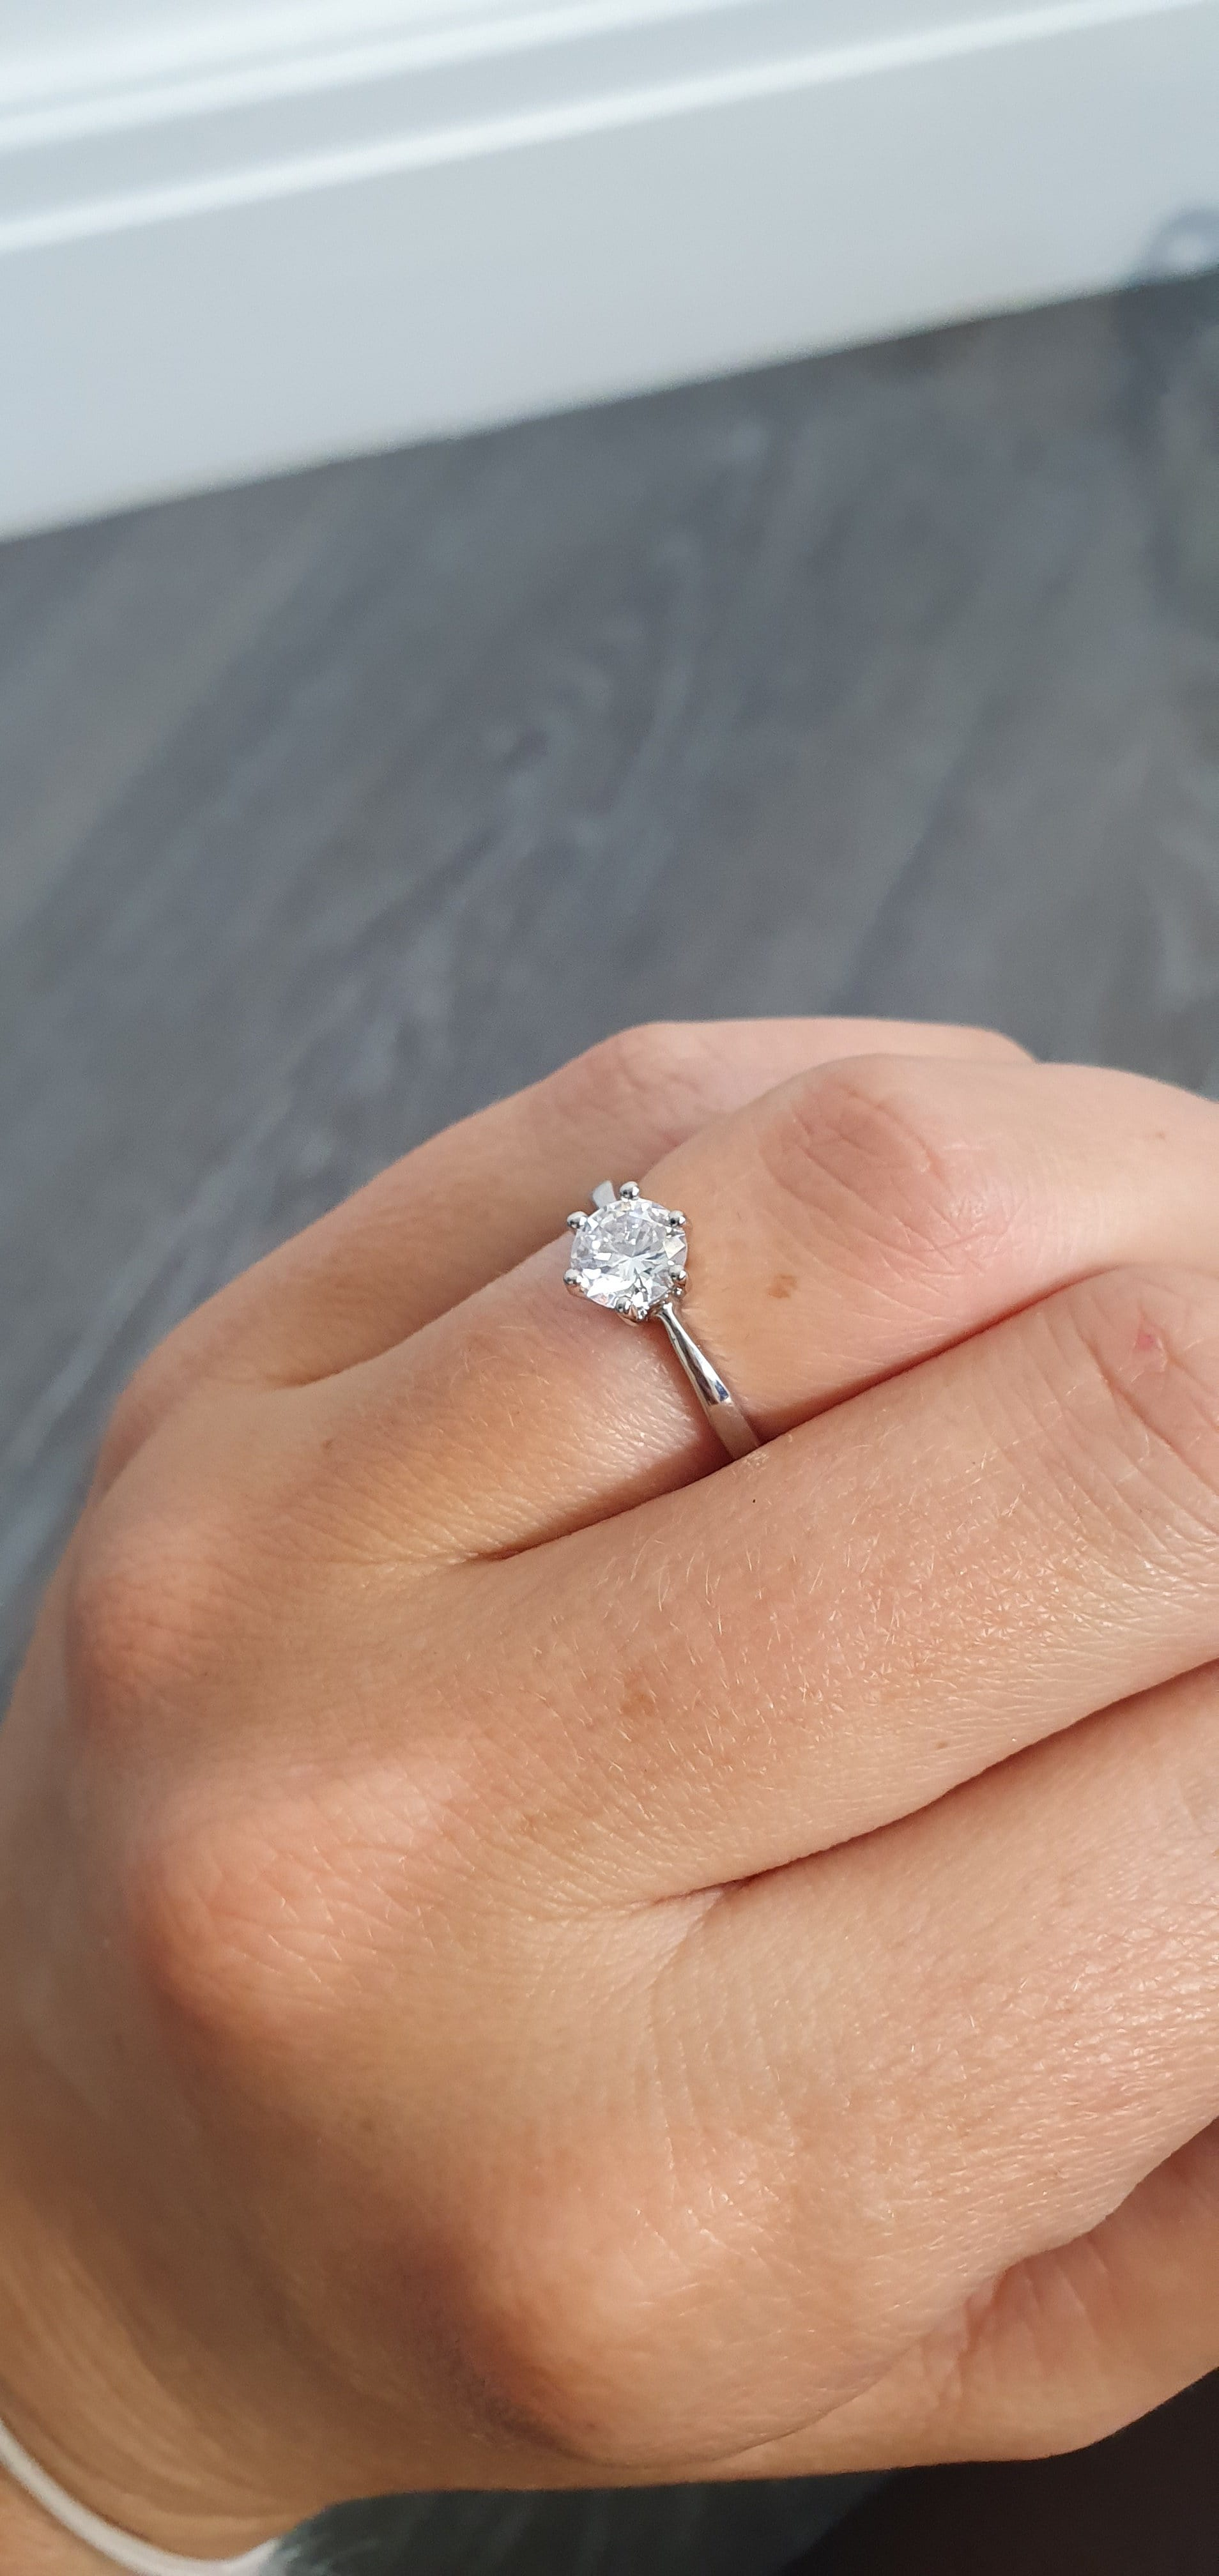 The Solitaire Diamante ring